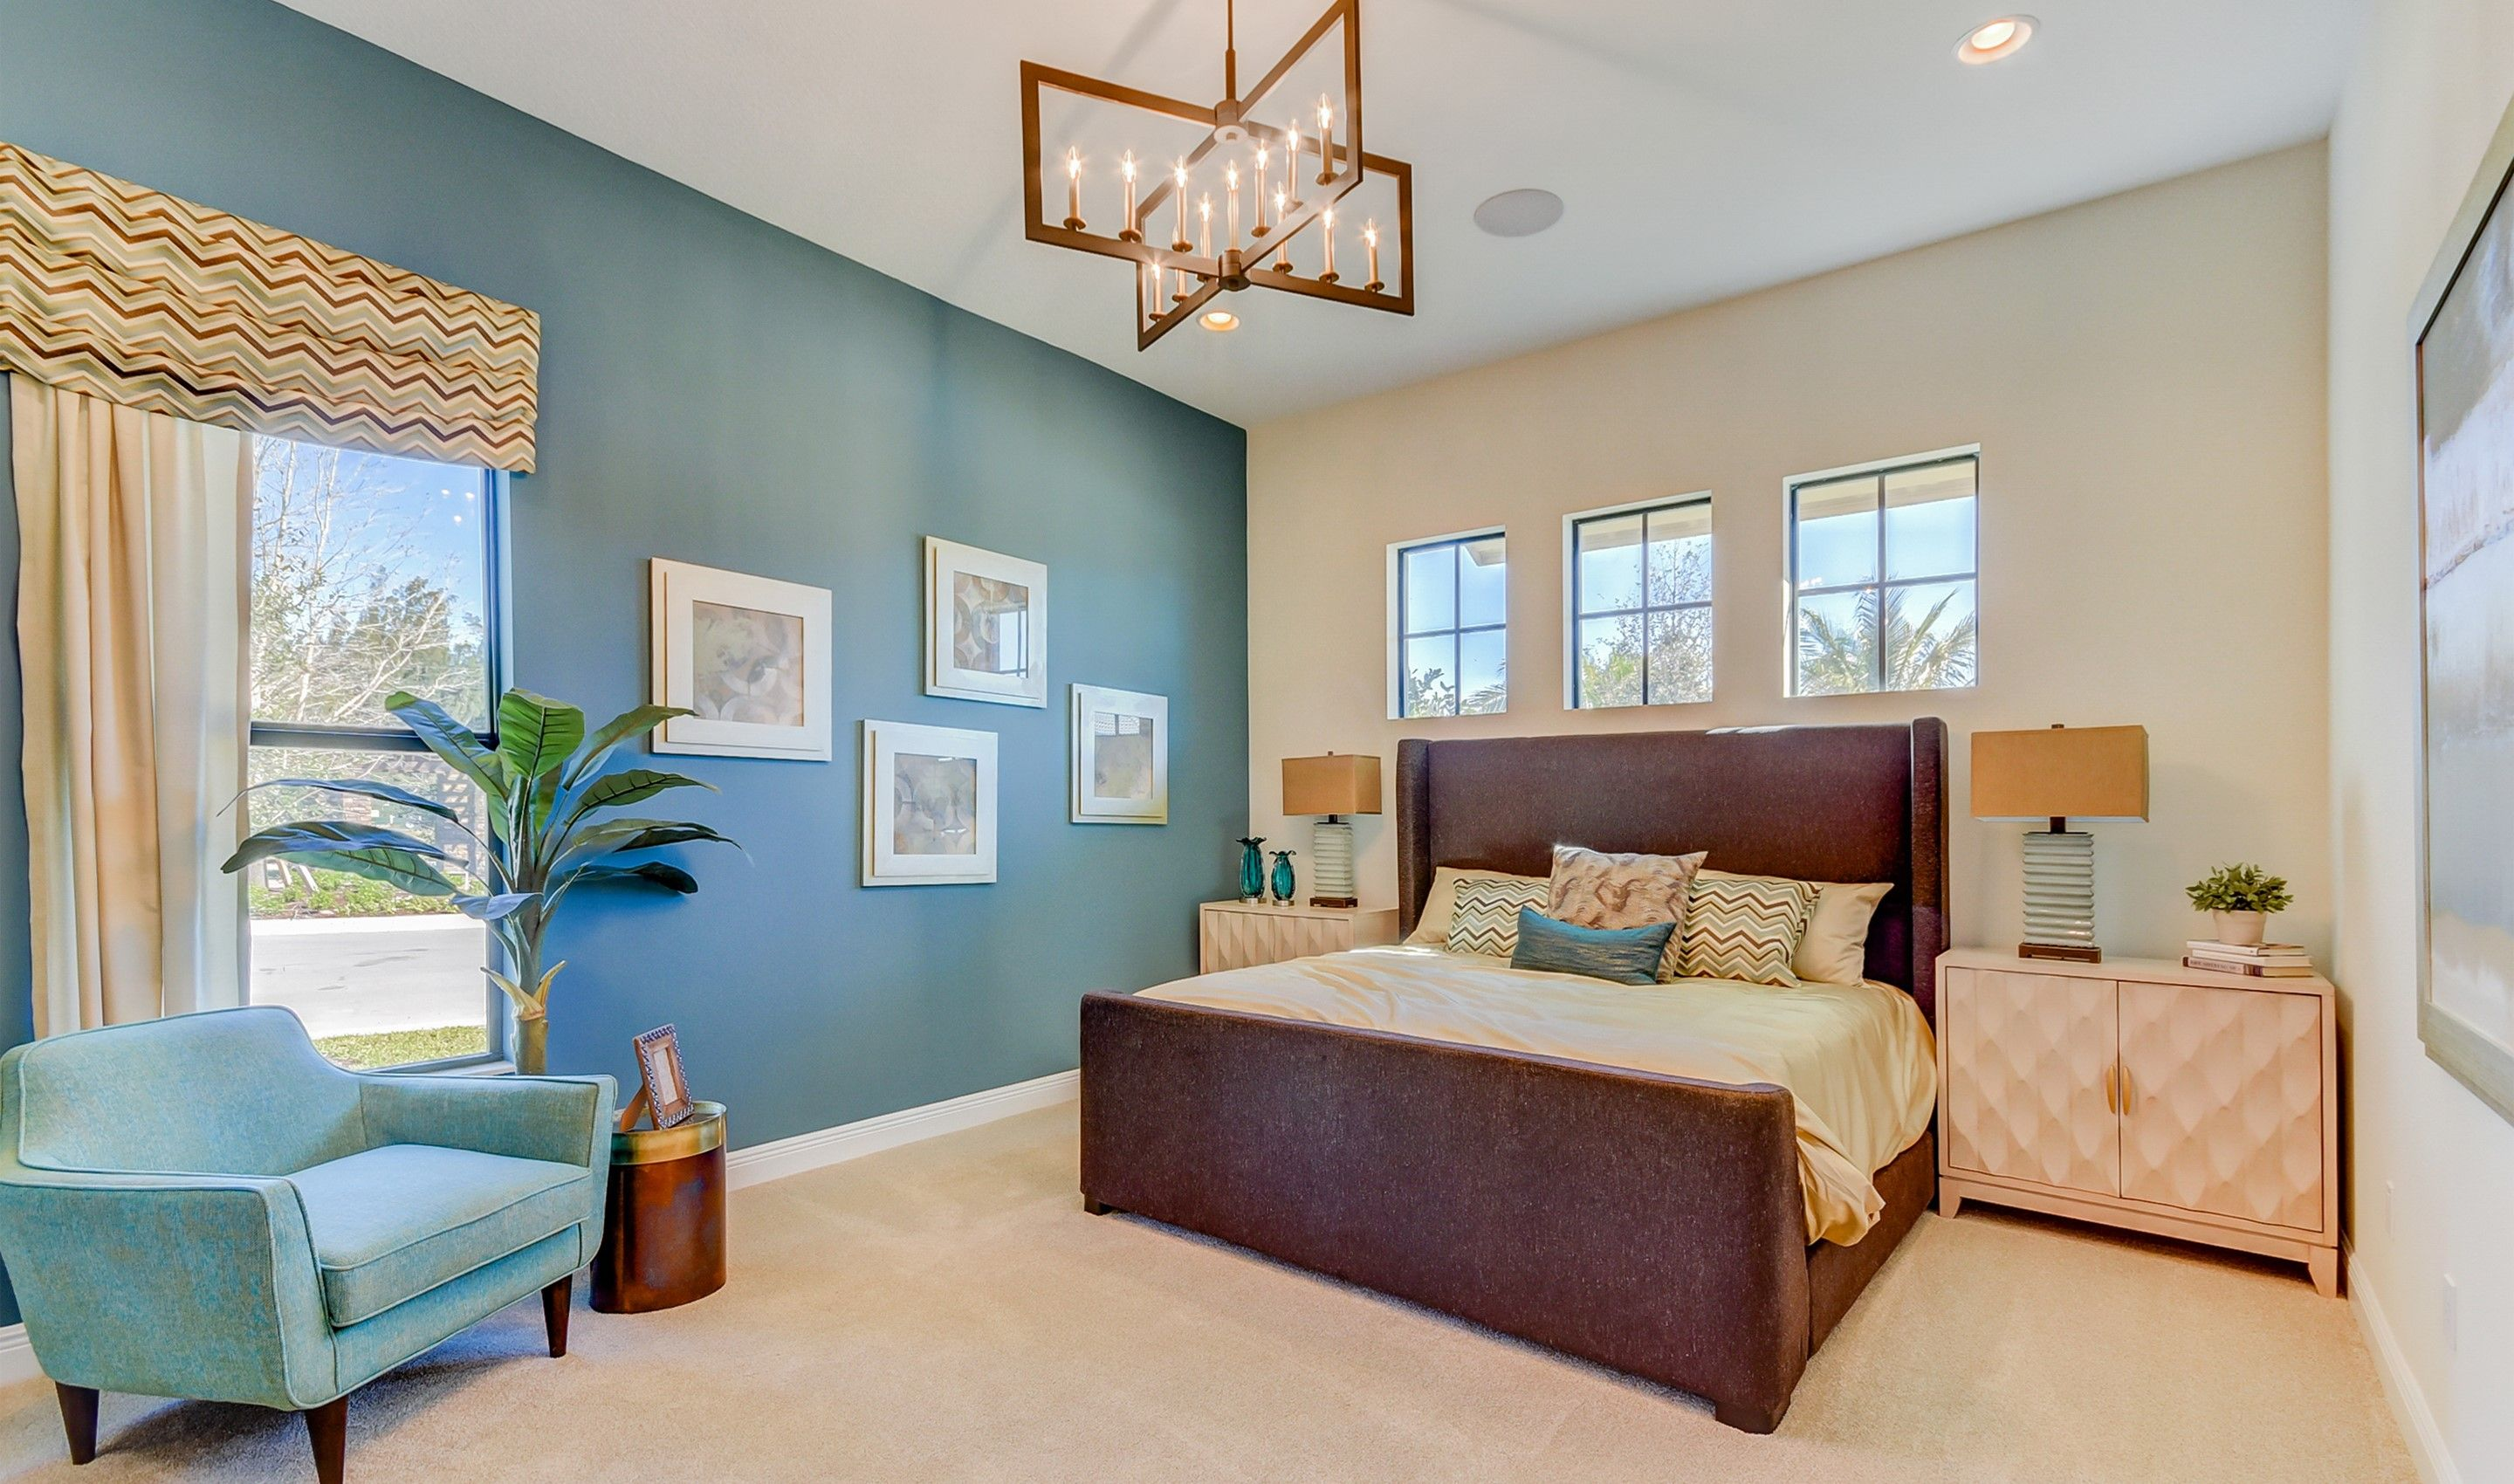 Bedroom featured in the Verna By K. Hovnanian's® Four Seasons in Broward County-Ft. Lauderdale, FL